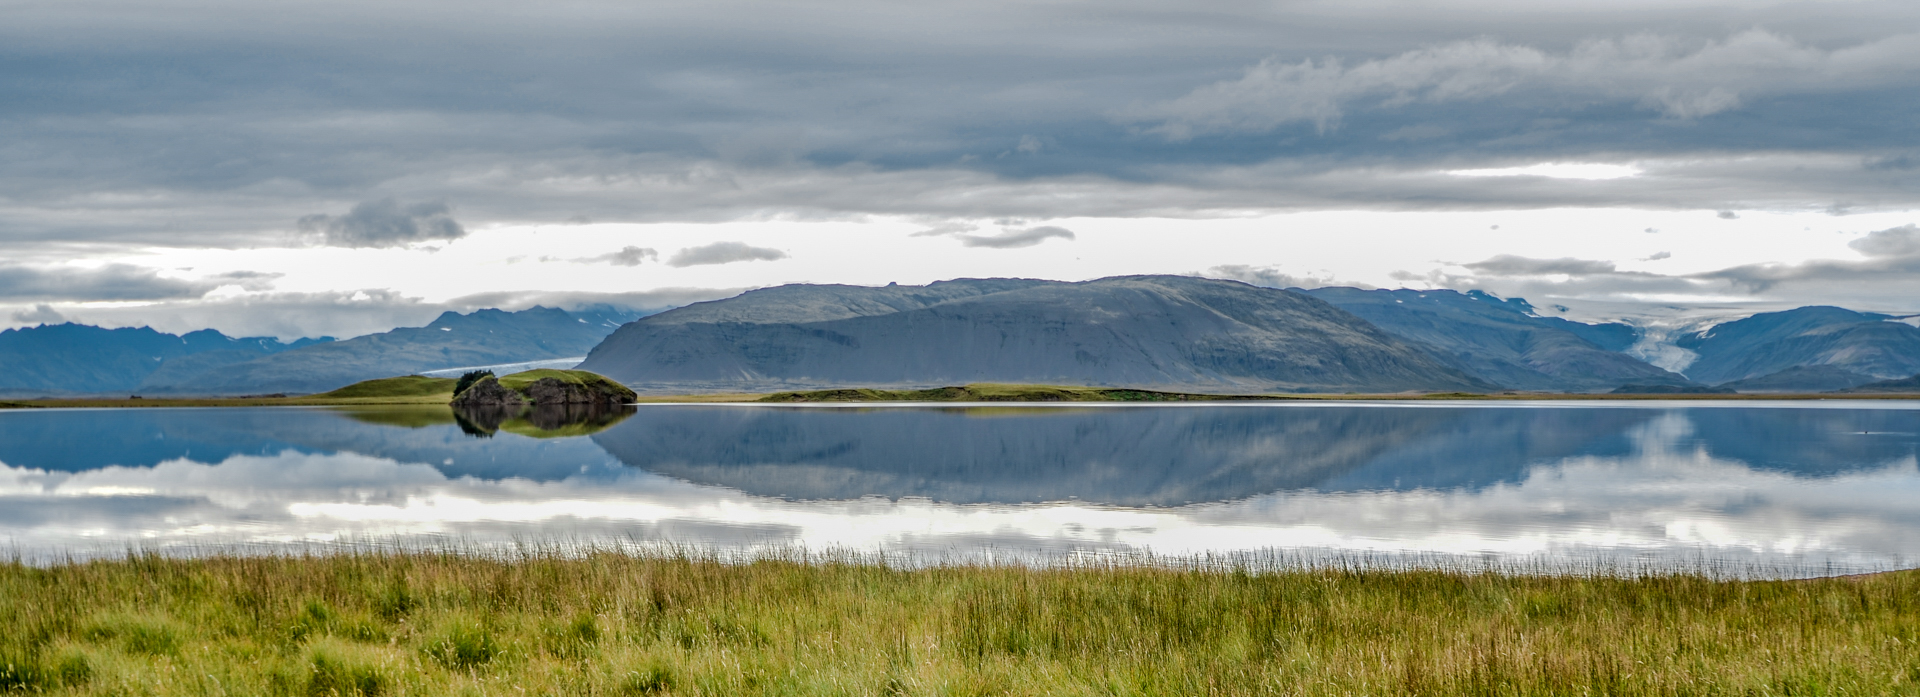 Iceland Reflection 2